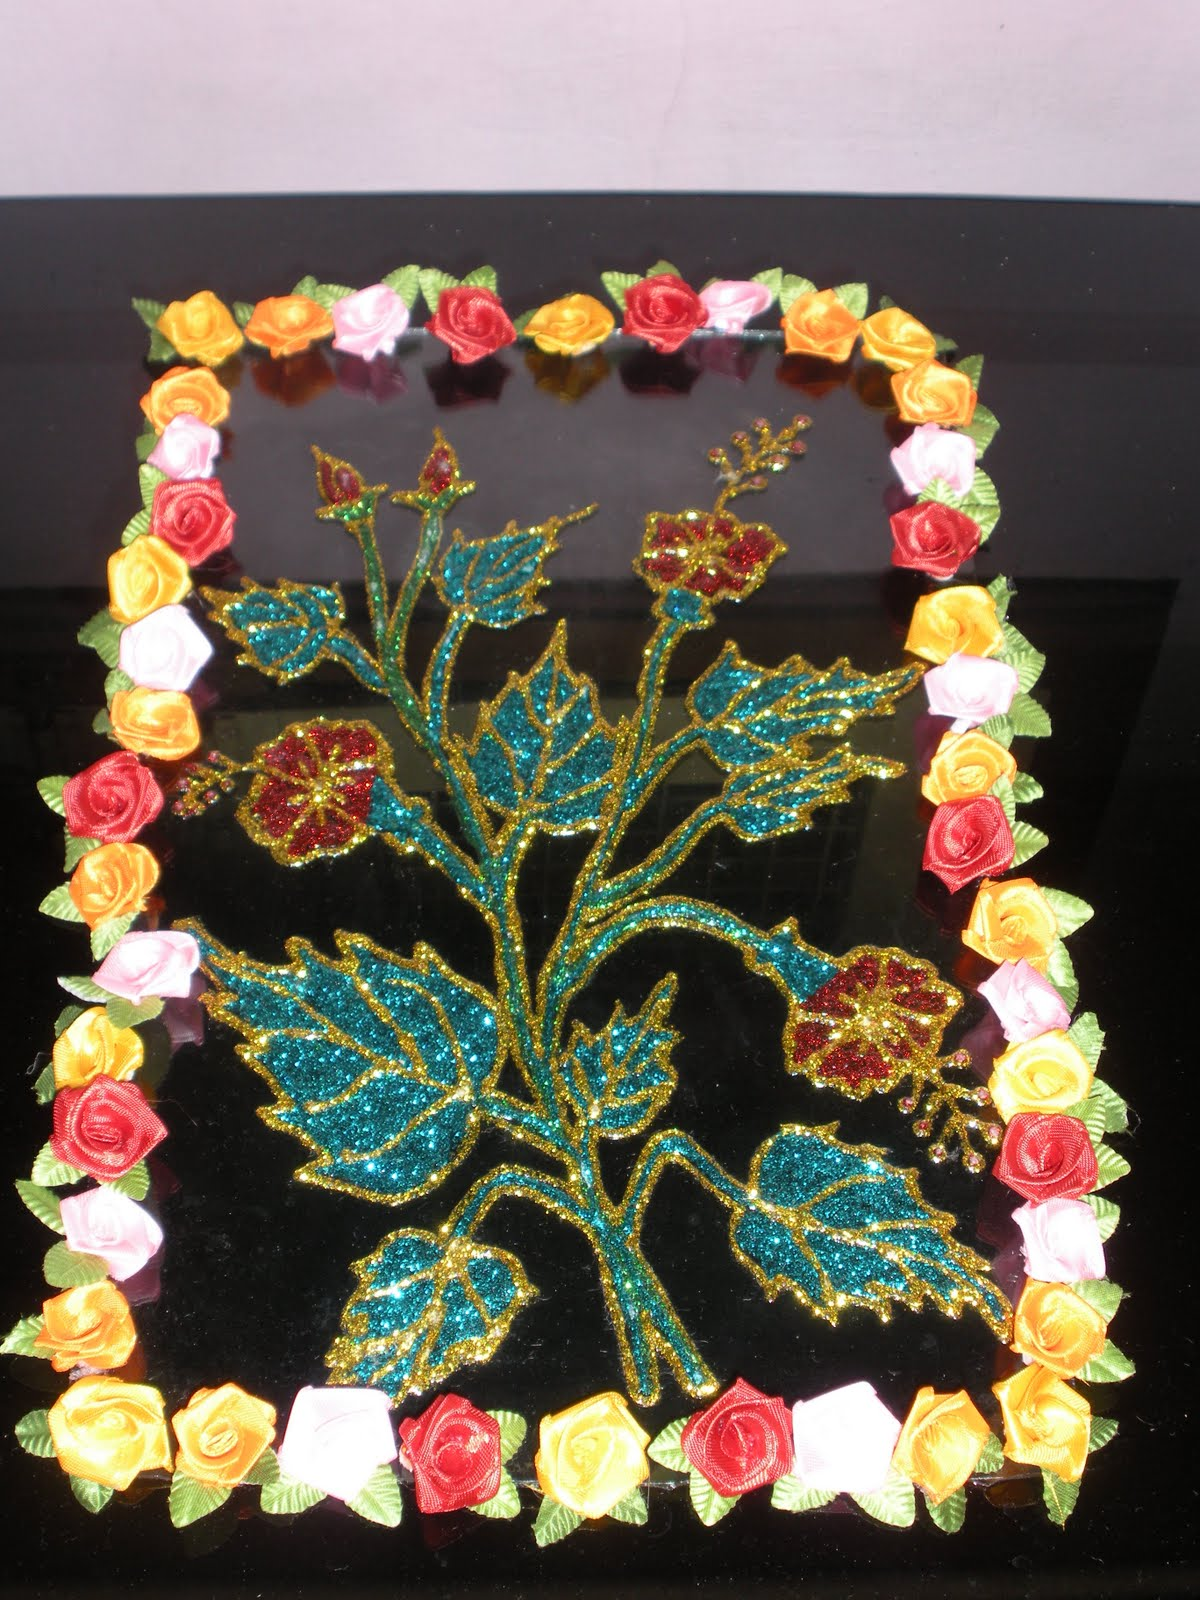 In this type of glass painting instead of glass black out liner 3d glitter out liner have been used also small rose flower have been used for the frame